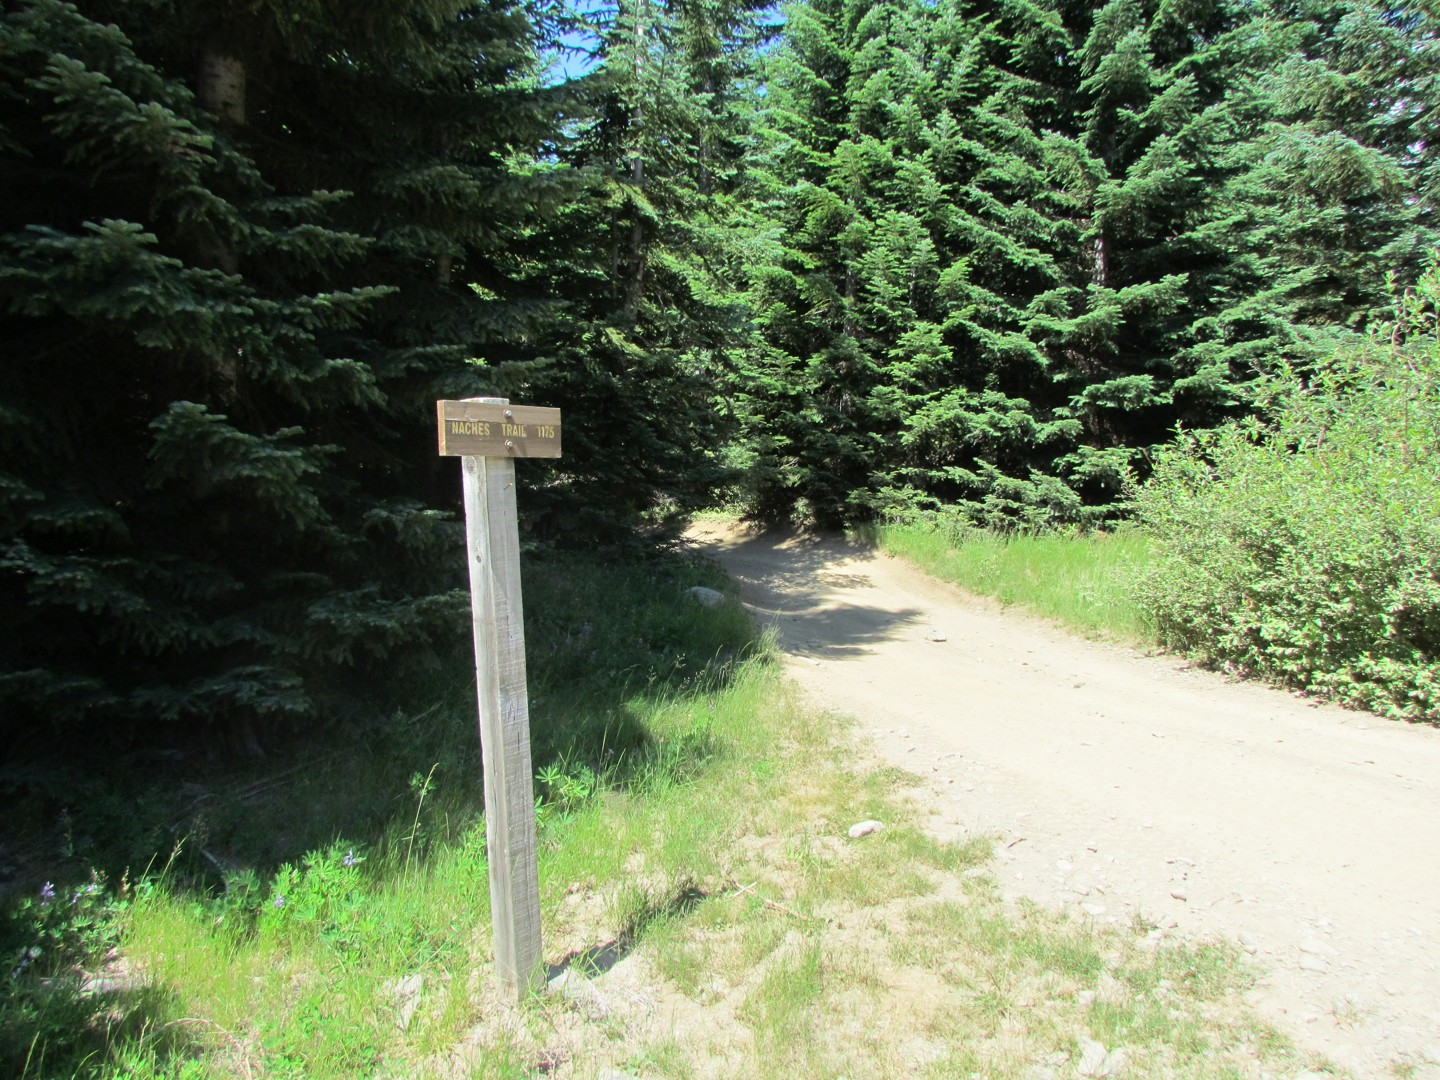 Naches Trail - Waypoint 9: Trail intersection / Start point 3